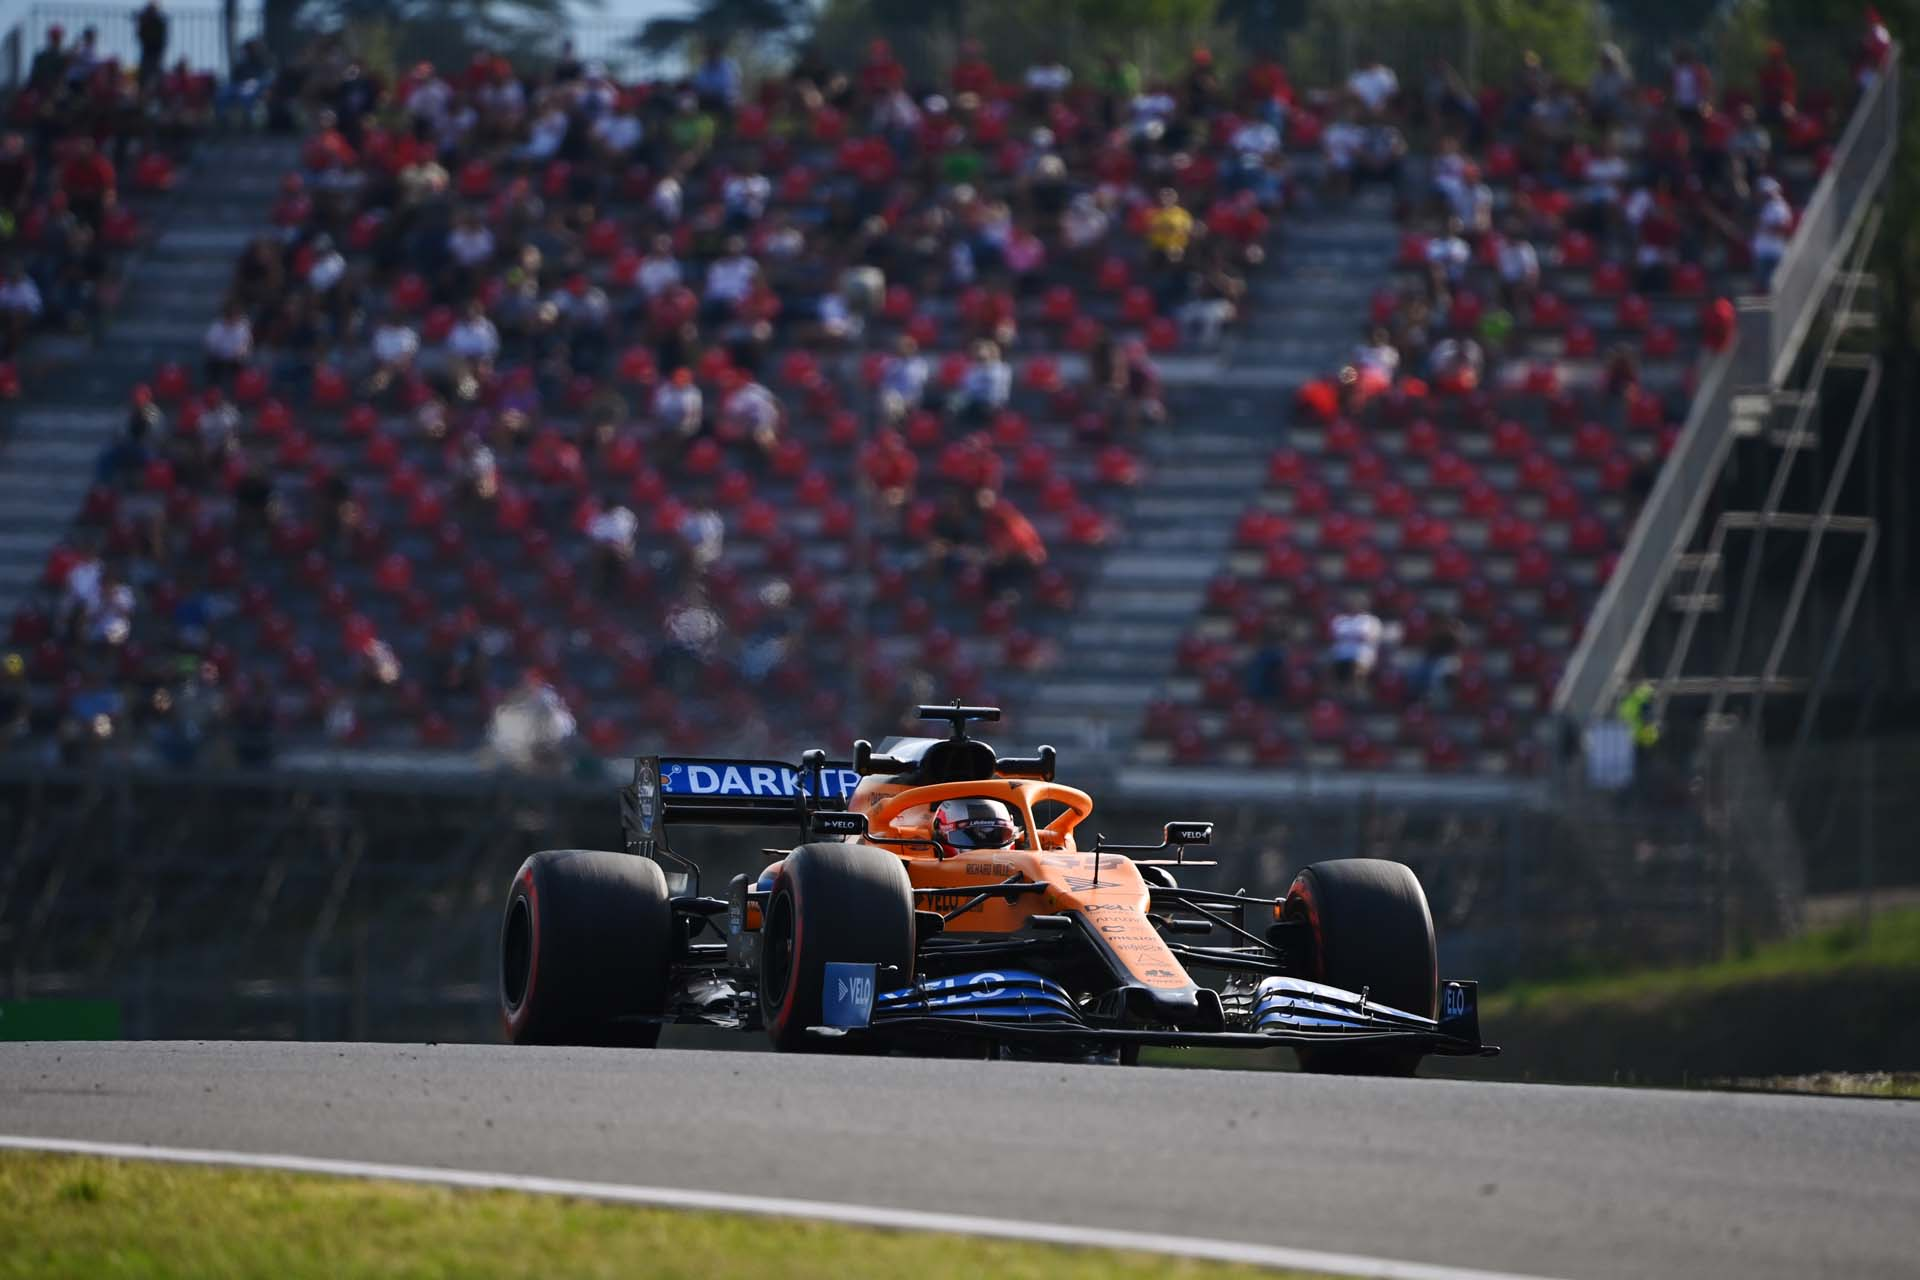 Carlos Sainz, McLaren MCL35, crests a brow on a straight